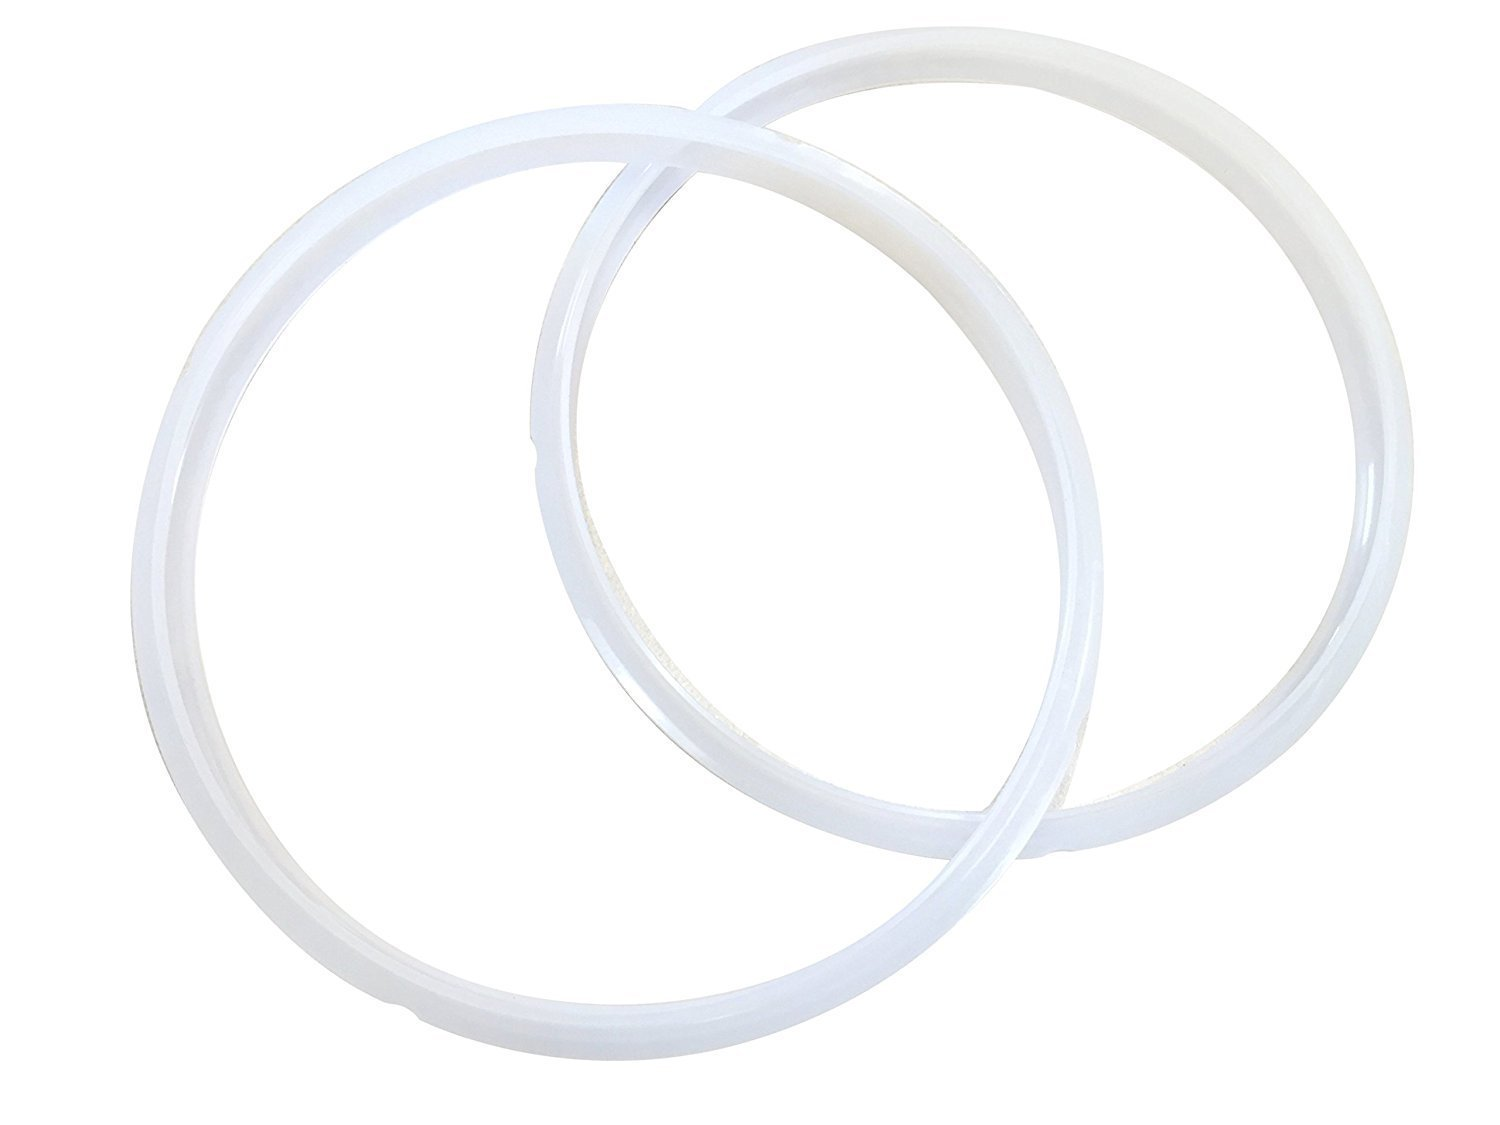 TWIN PACK: Two Rubber Gaskets For Power Pressure Cookers (All 5 & 6 Quart Models) by GJS Gourmet (Image #1)